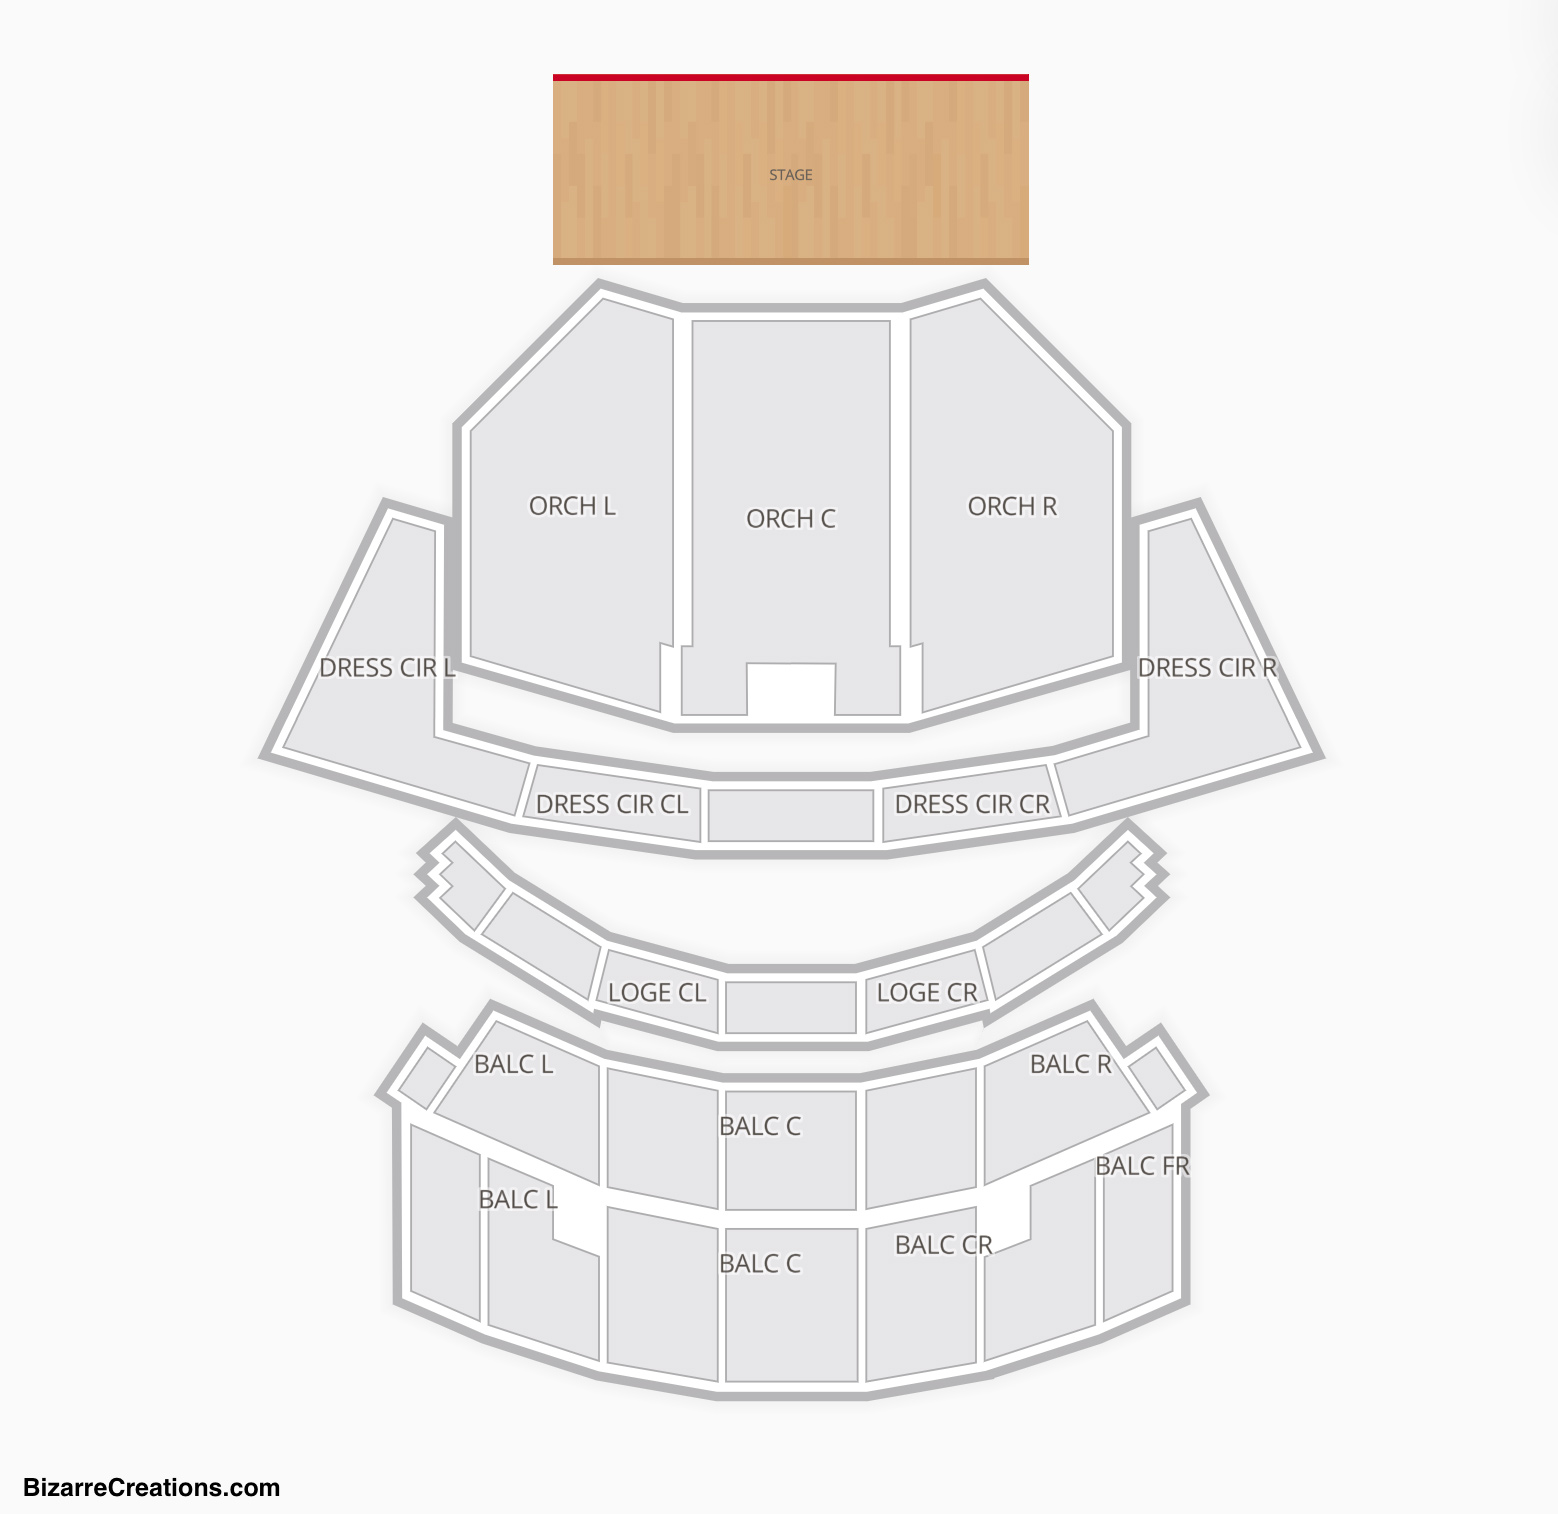 Cadillac Palace Theatre Seating Chart Seating Charts Tickets